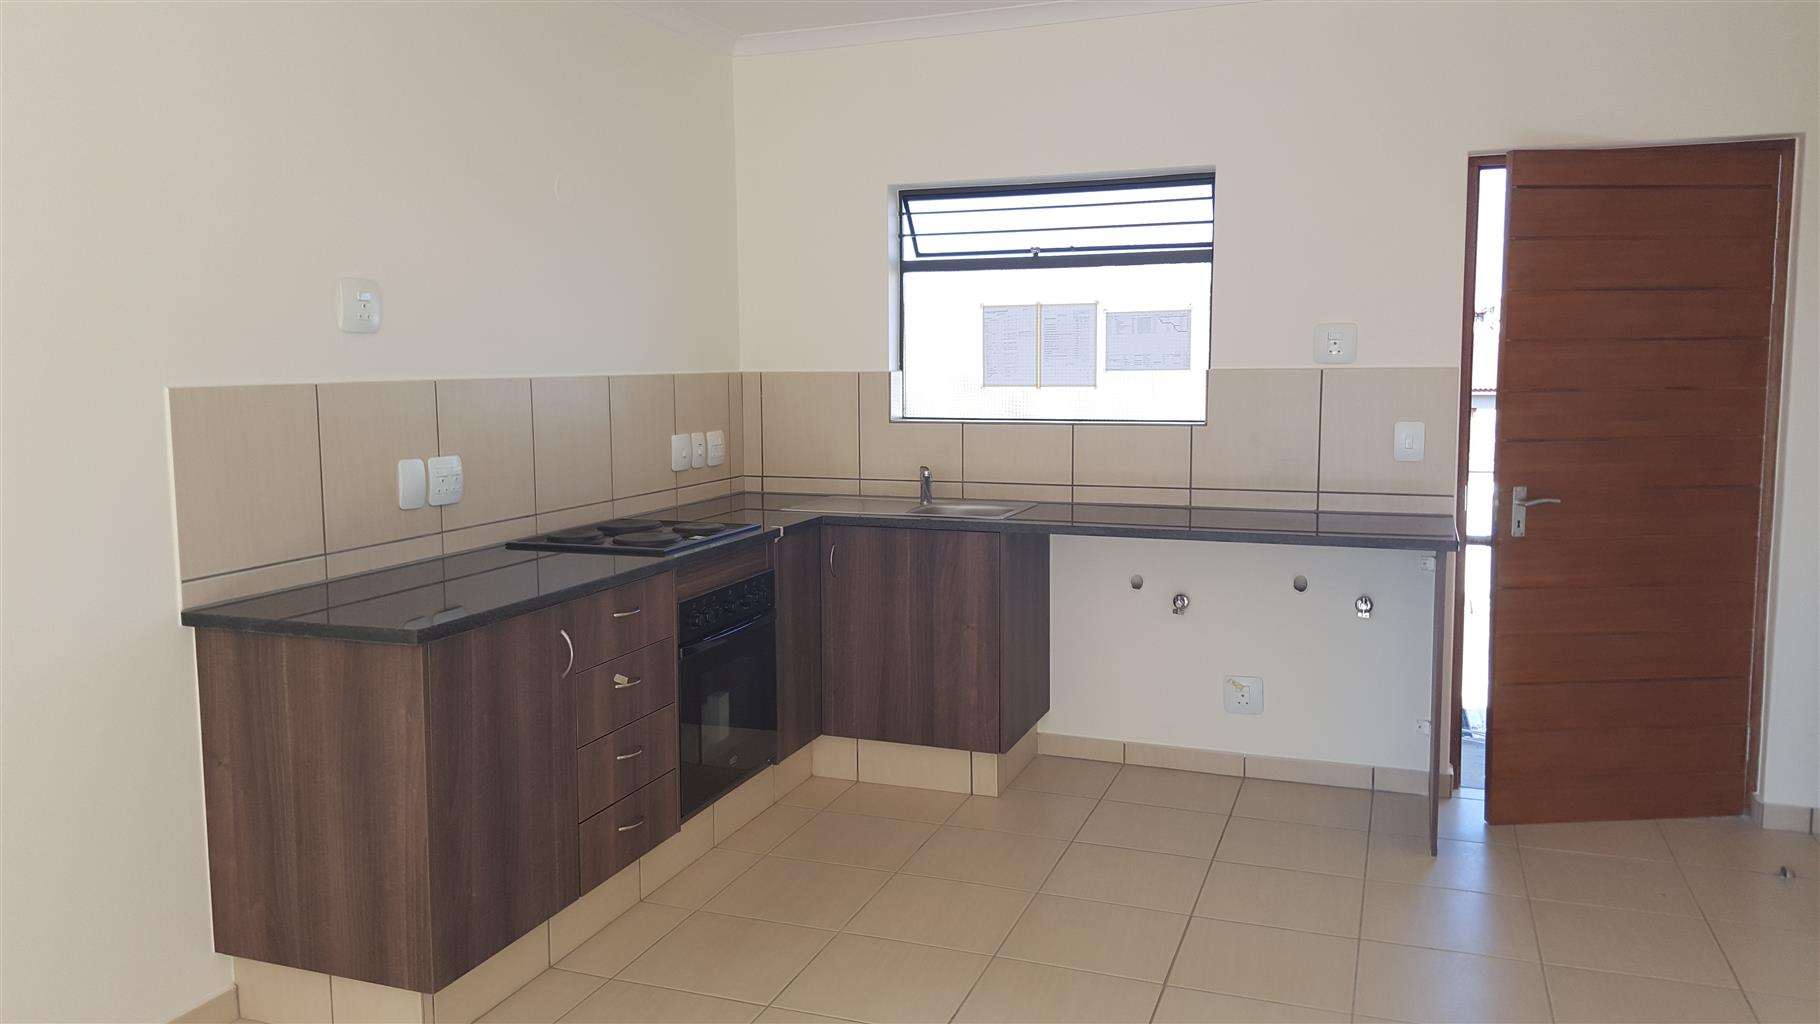 1 Bedroom Townhouse for rent.